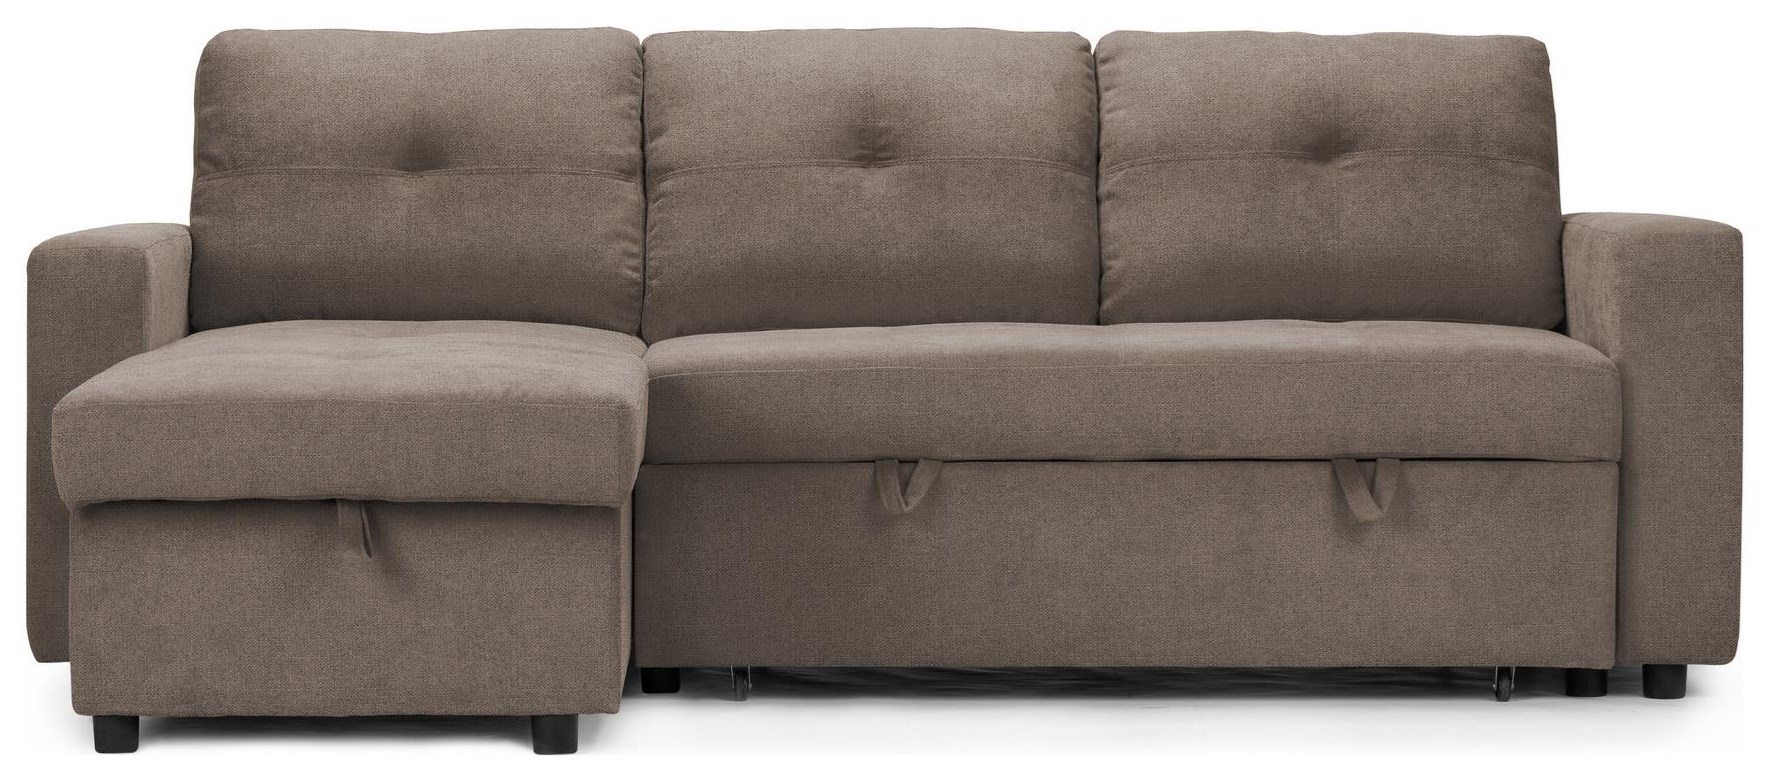 Abby Sleeper Sofa with Storage Chaise at Bennett's Furniture and Mattresses